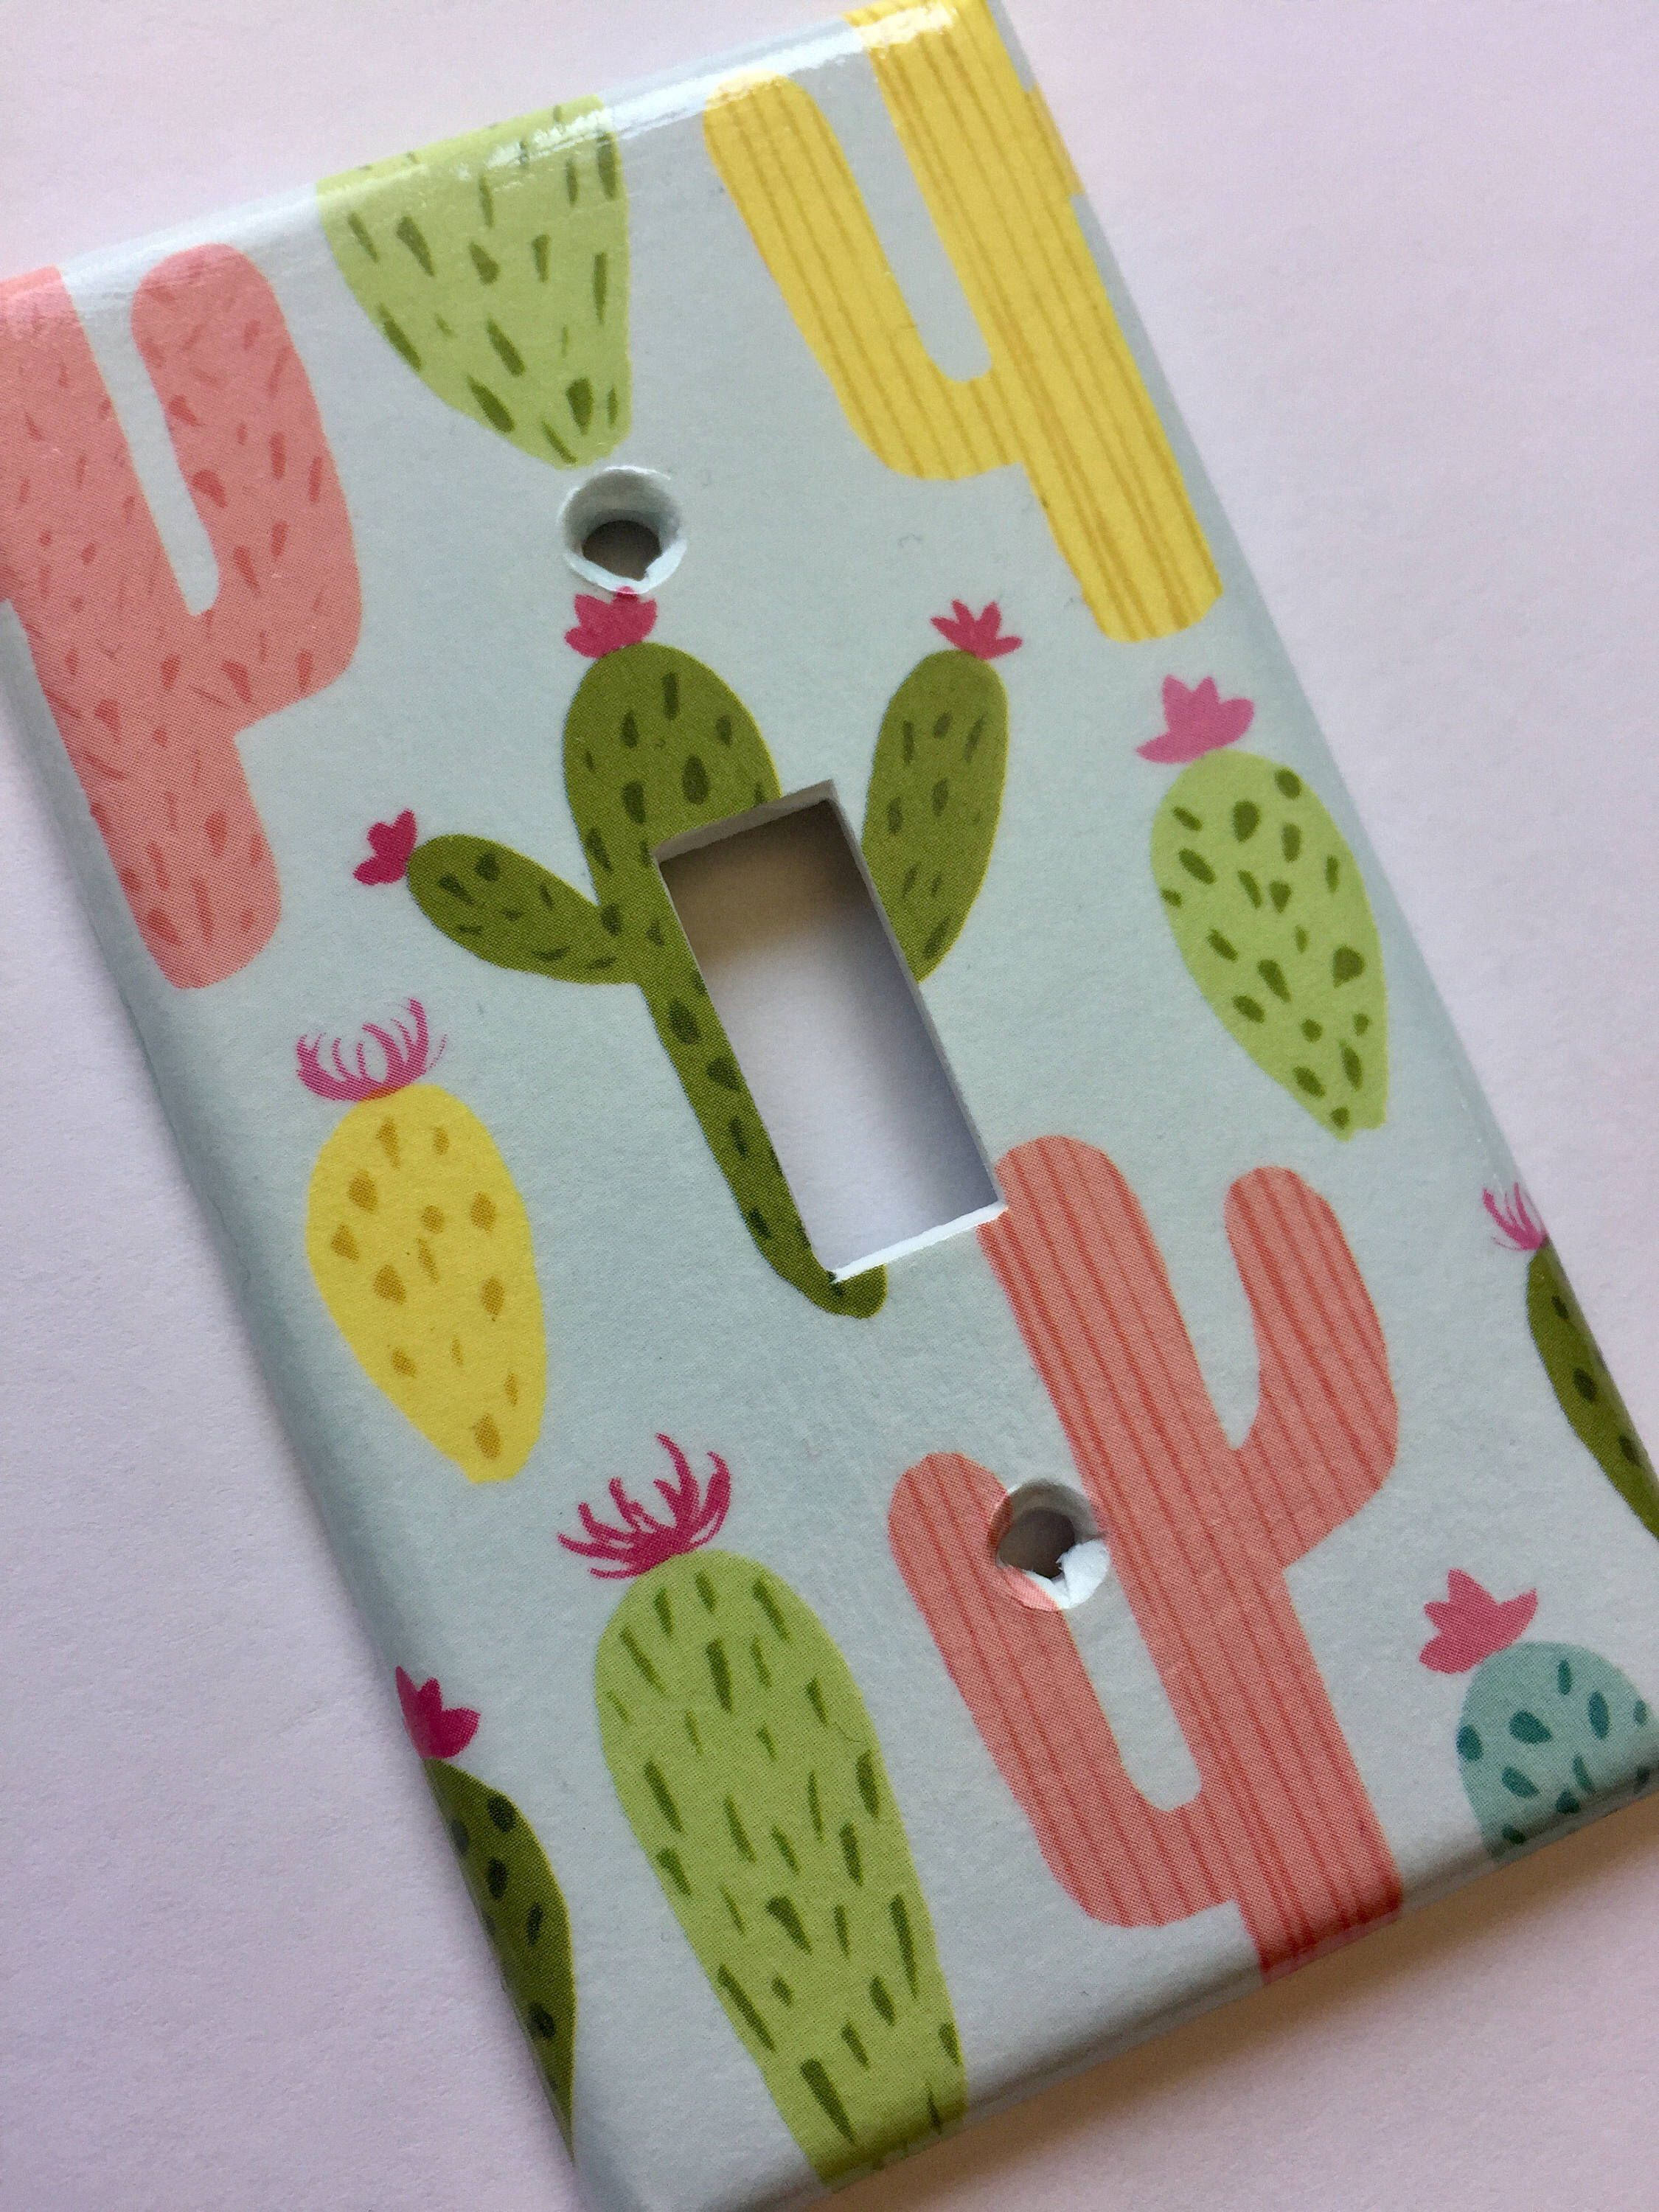 Cactus Decor, Light Switch Cover, Succulent Gift, Cactus Decor, Cactus Wall Art, Cactus Gift, Succulent Decor, Succulent Arrangement, Gift